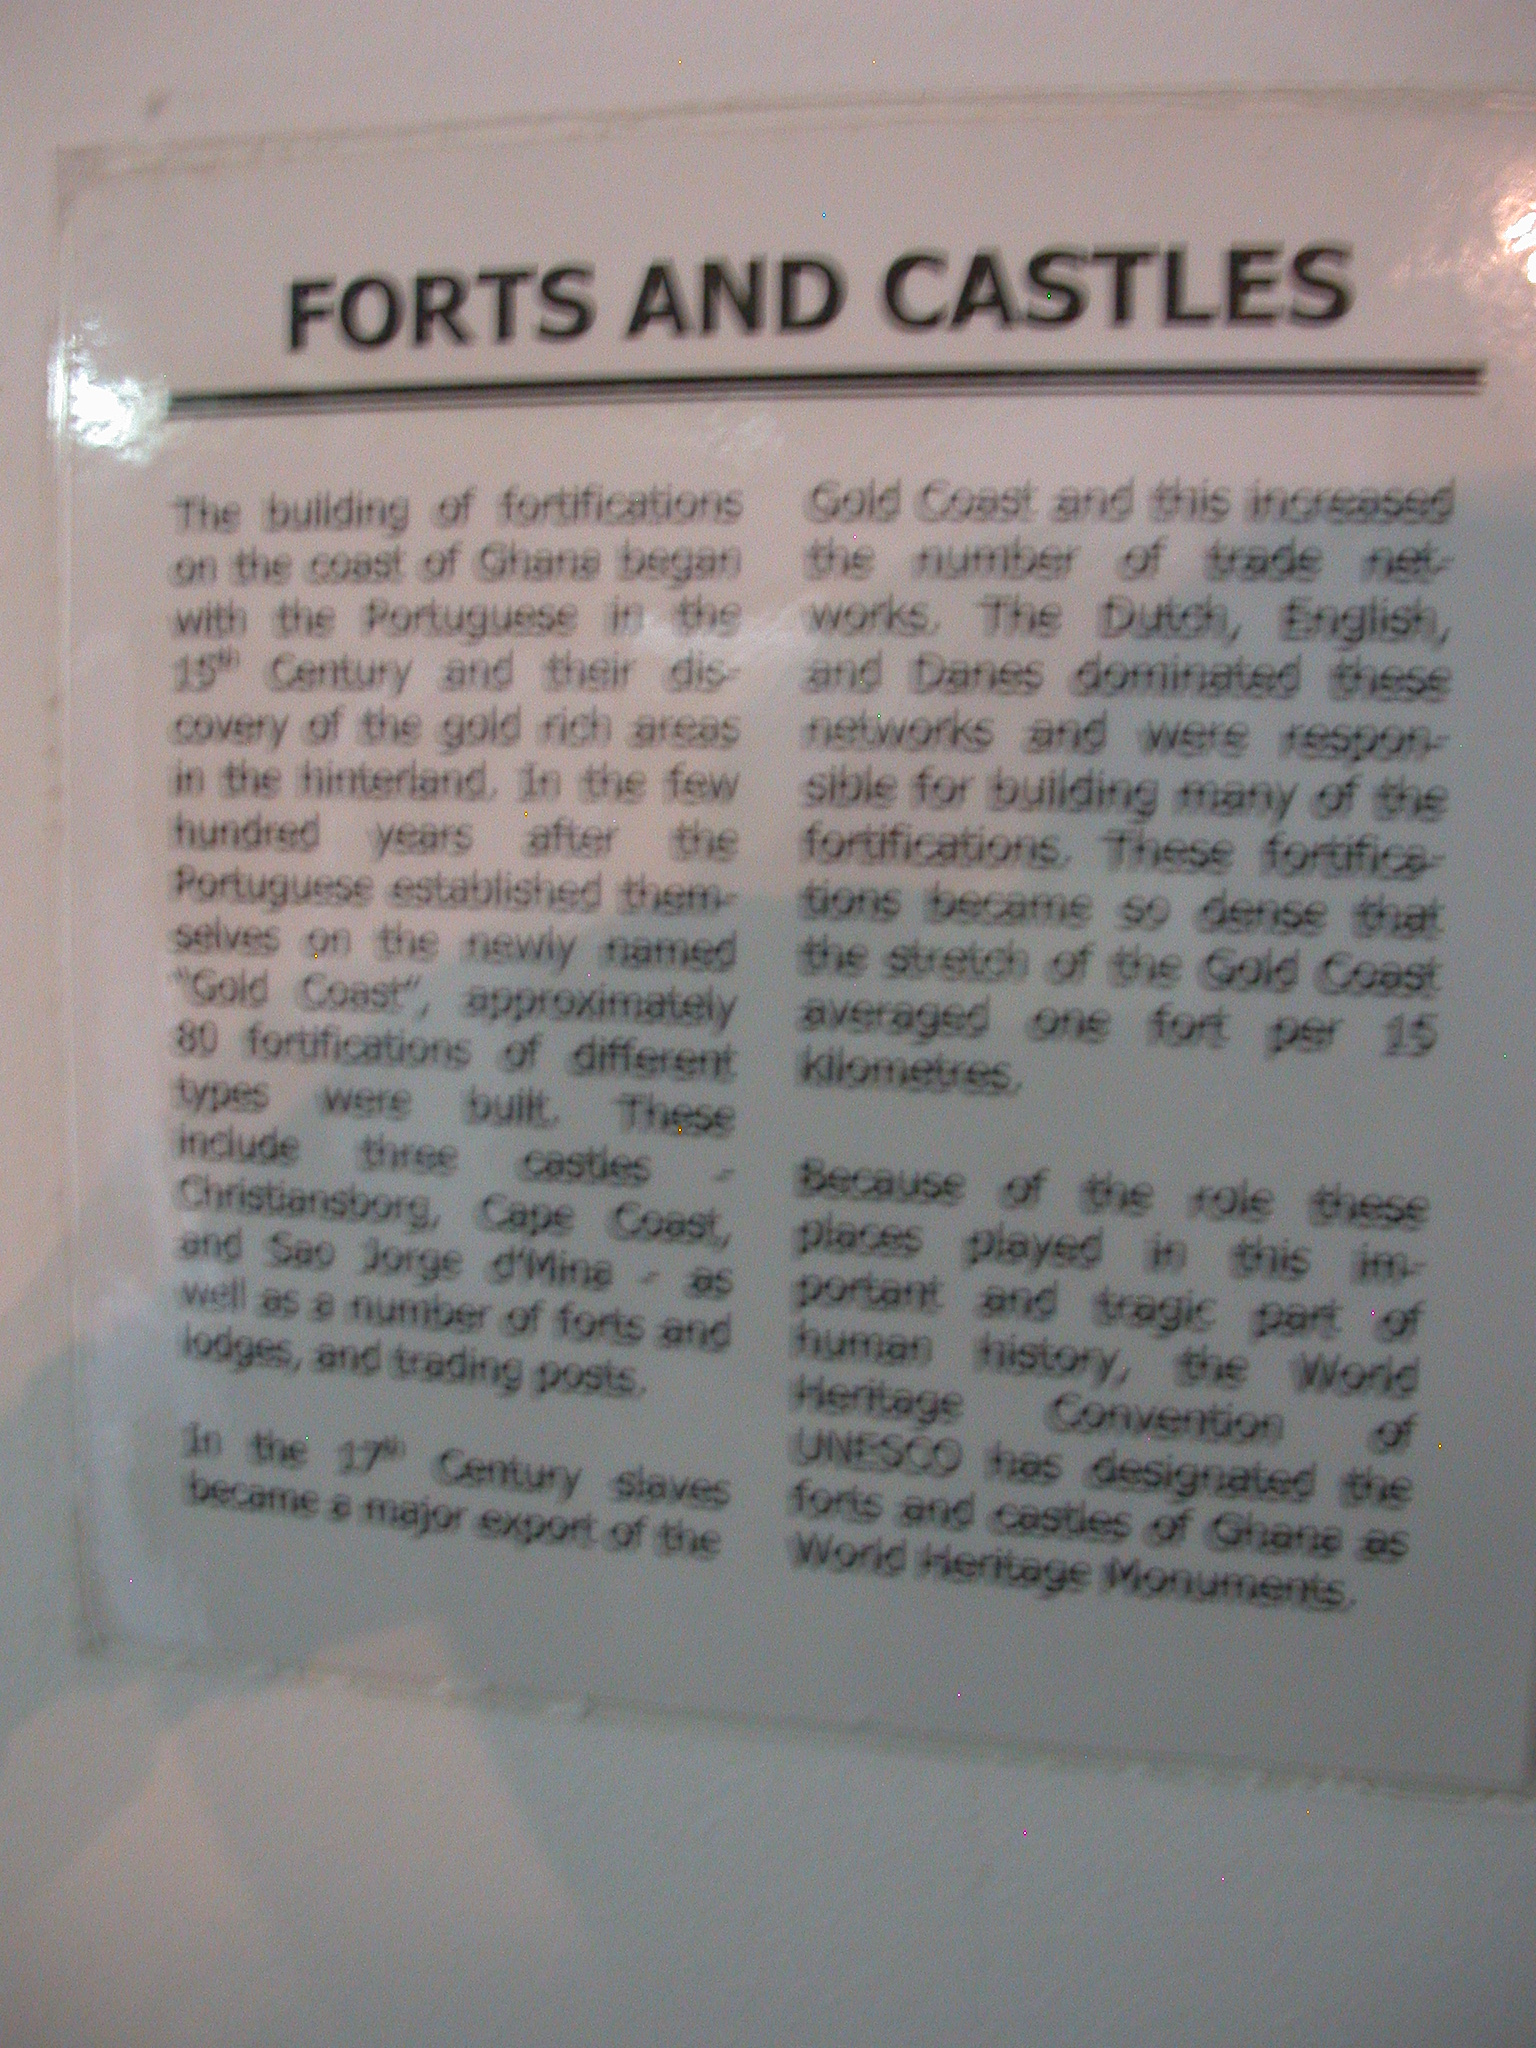 Forts and Castles Description, National Museum, Accra, Ghana